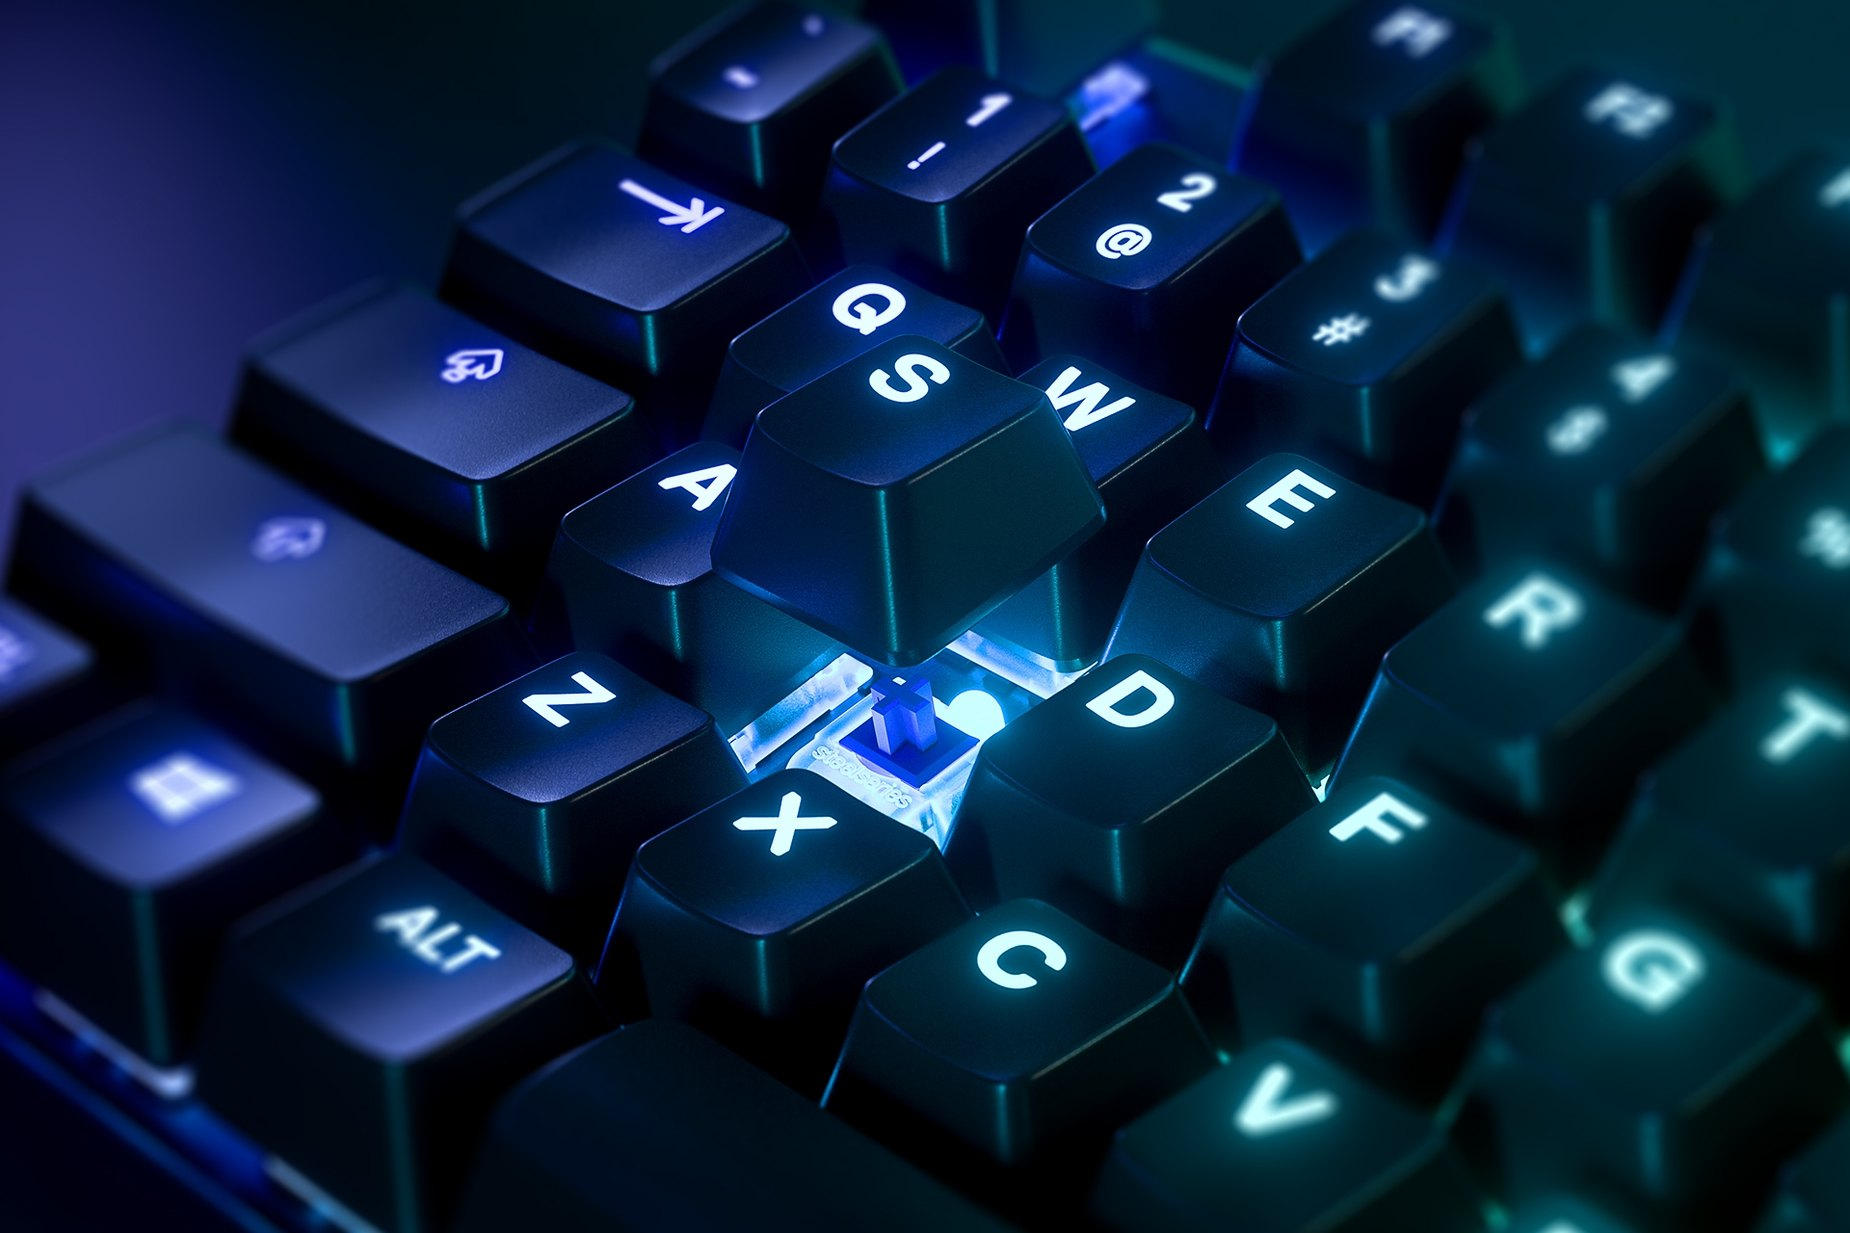 Zoomed in view of a single key on the Japanese-Apex 7 TKL (Blue Switch) gaming keyboard, the key is raised up to show the SteelSeries QX2 Mechanical RGB Switch underneath